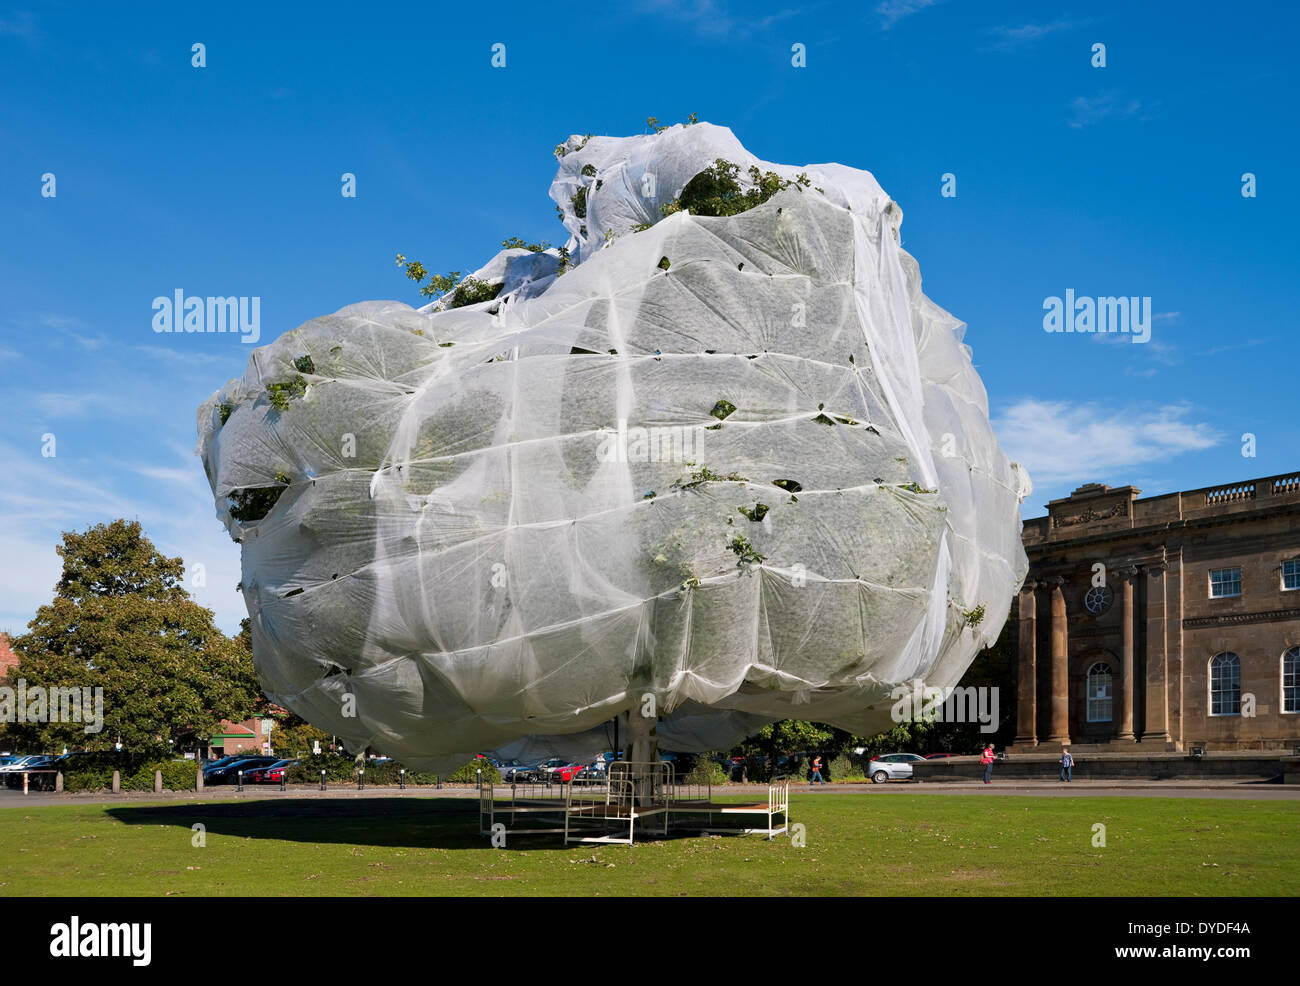 Large tree covered in horticultural fleece to protect it. - Stock Image